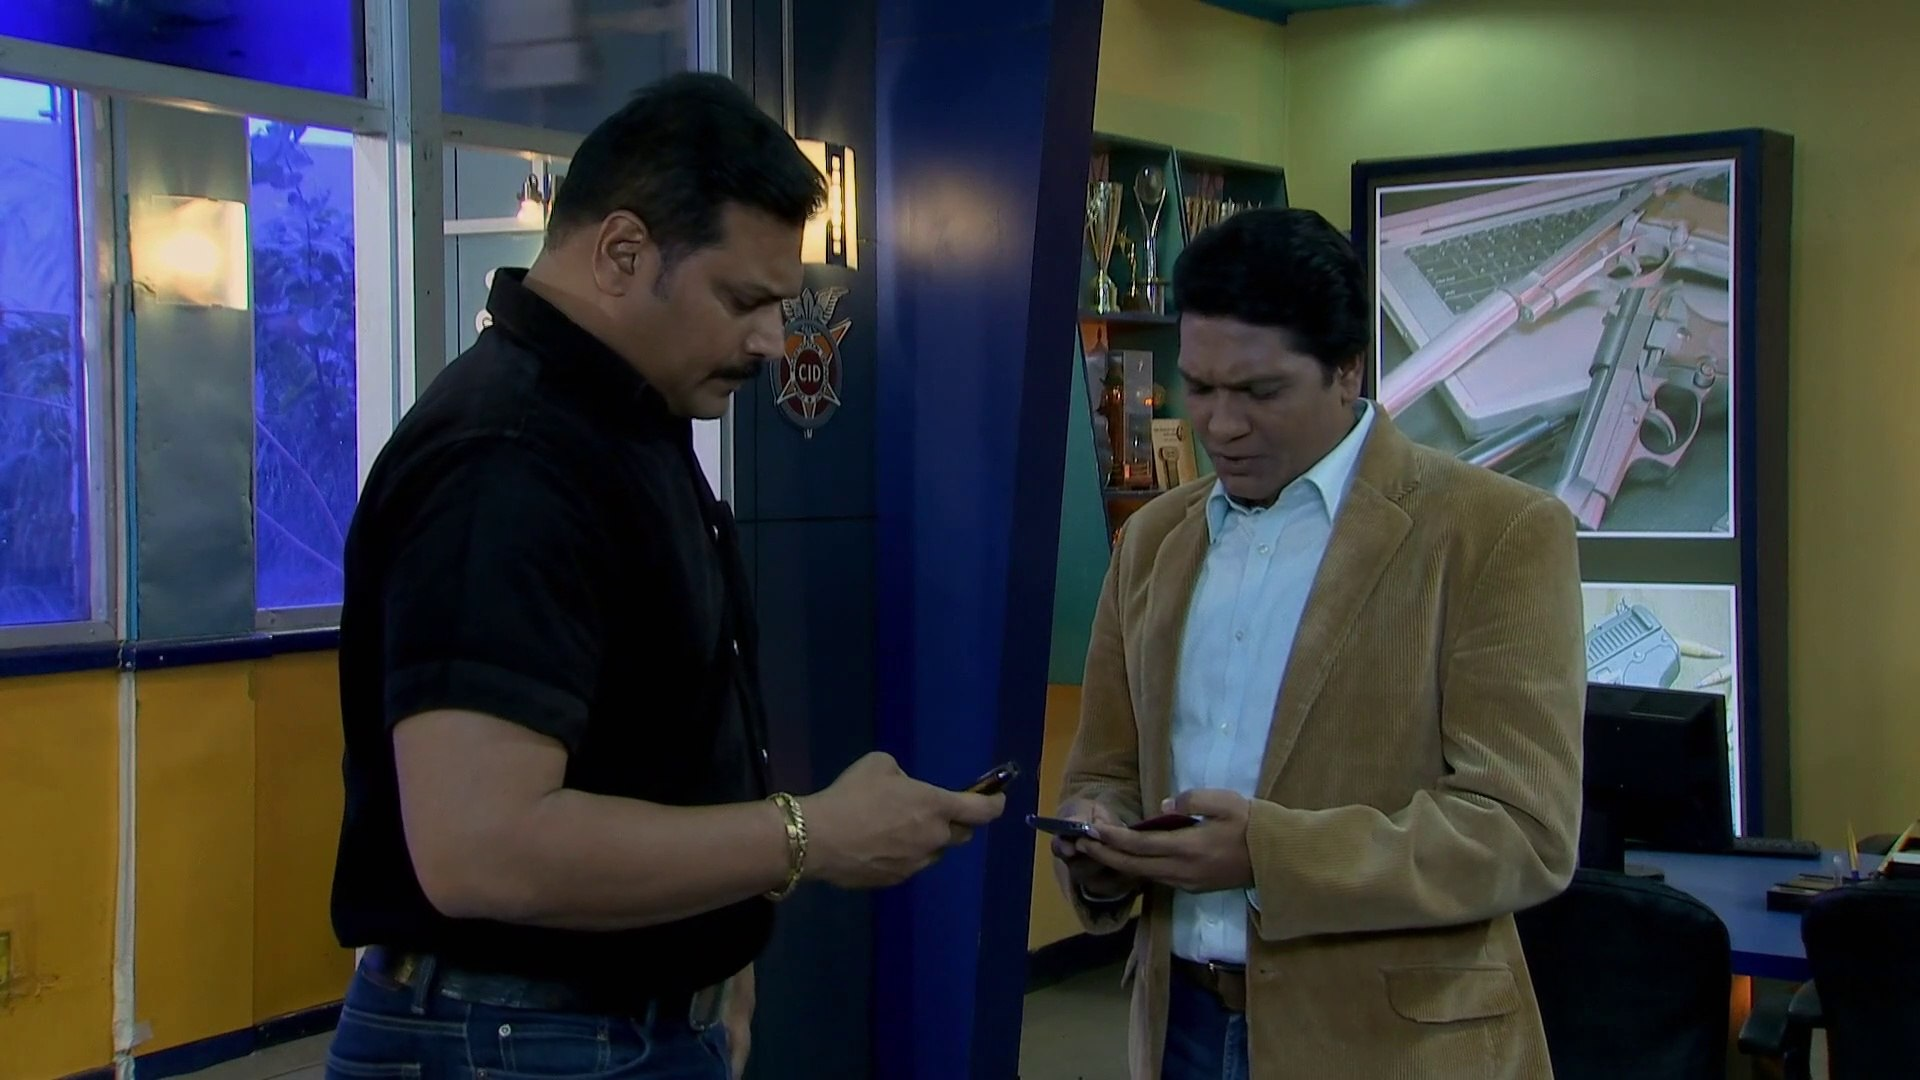 CID Full Episode In Hindi Episode Number 1109 - video dailymotion